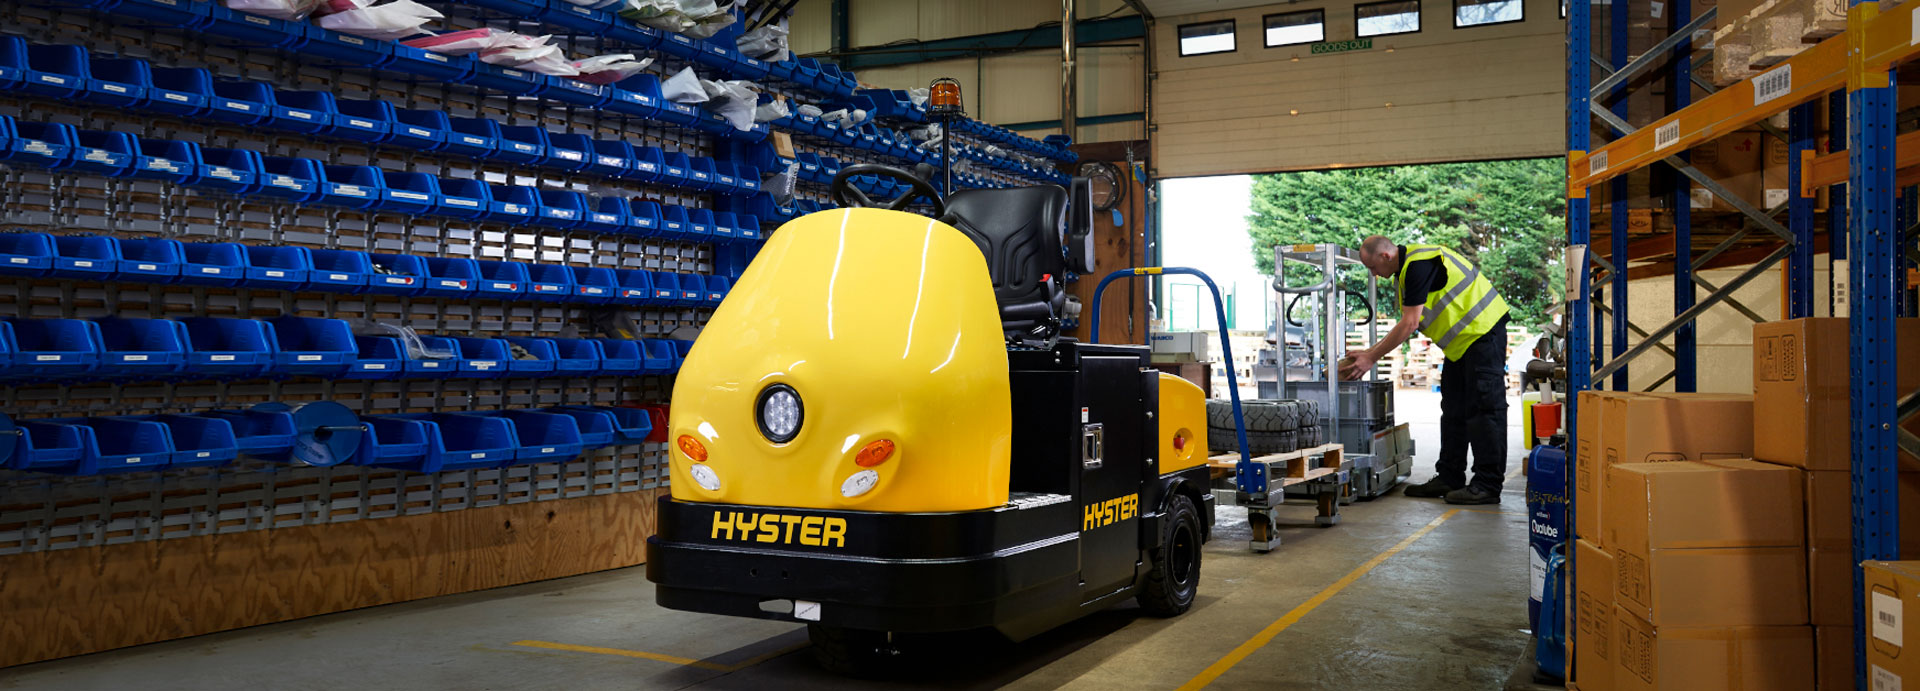 Hyster T7.0 HS3, T8.0 HS4 Tow Tractor